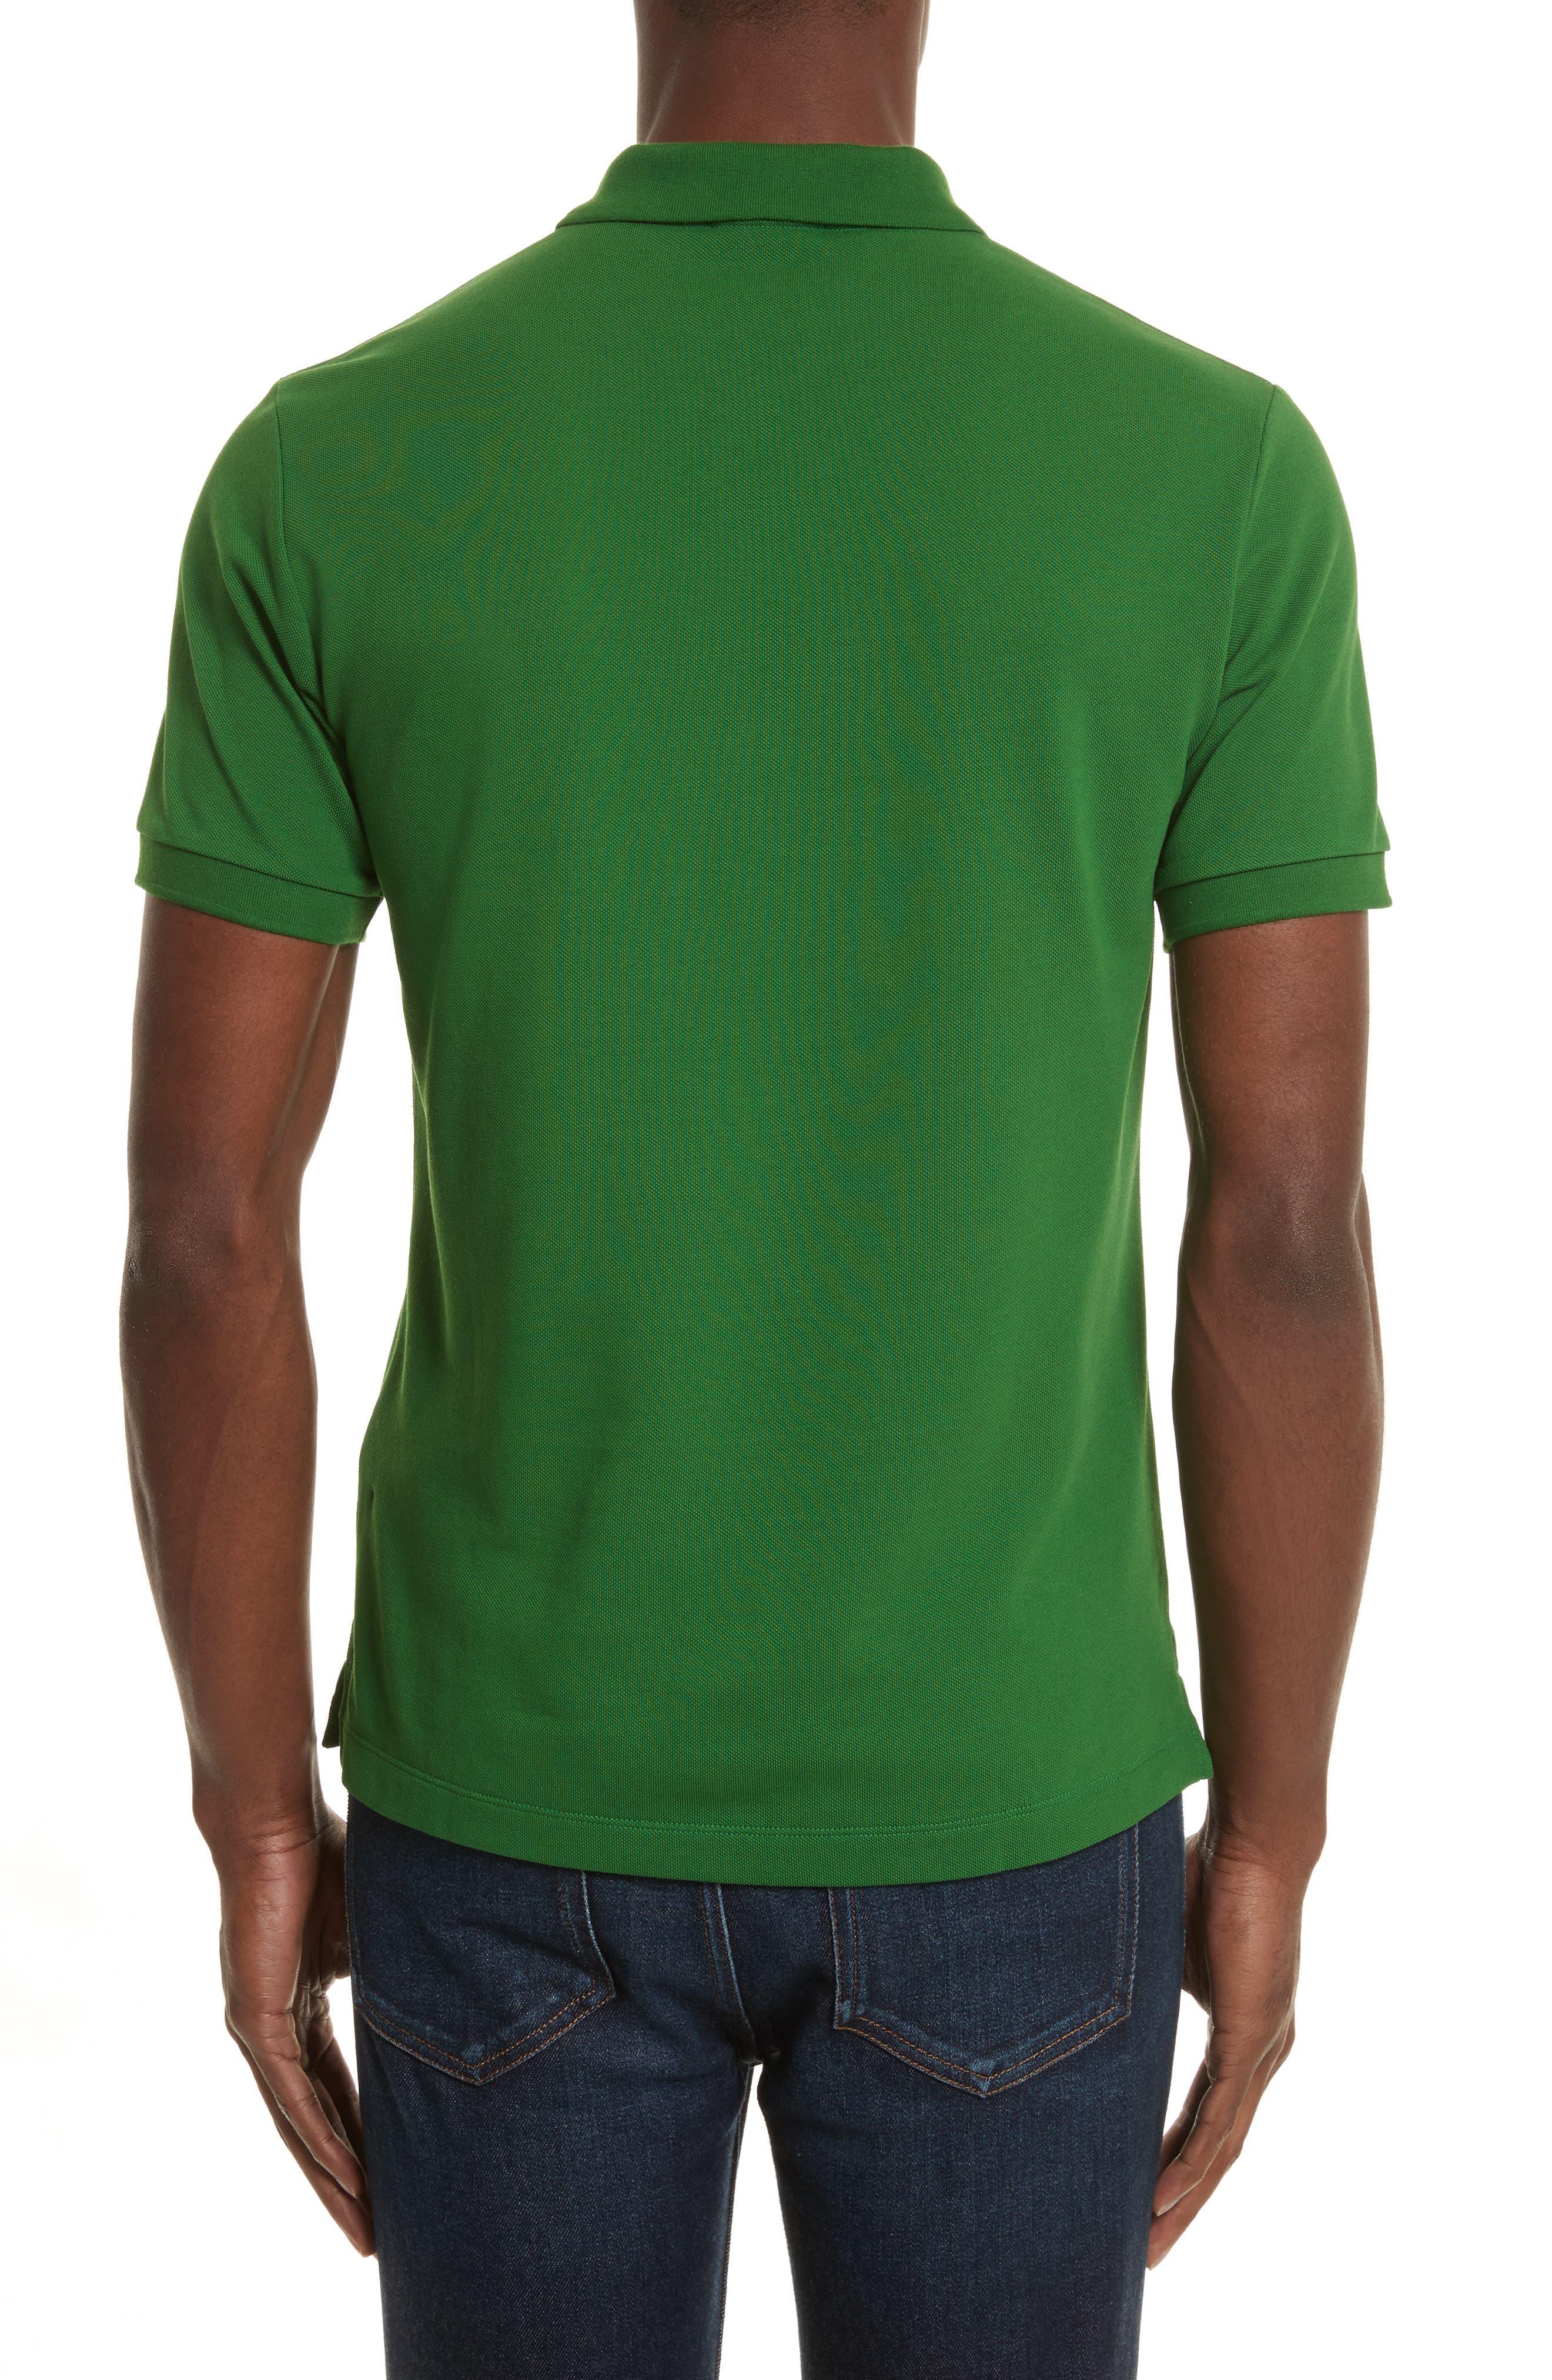 The best polo shirts for men - The Best Polo Shirts For Men 30